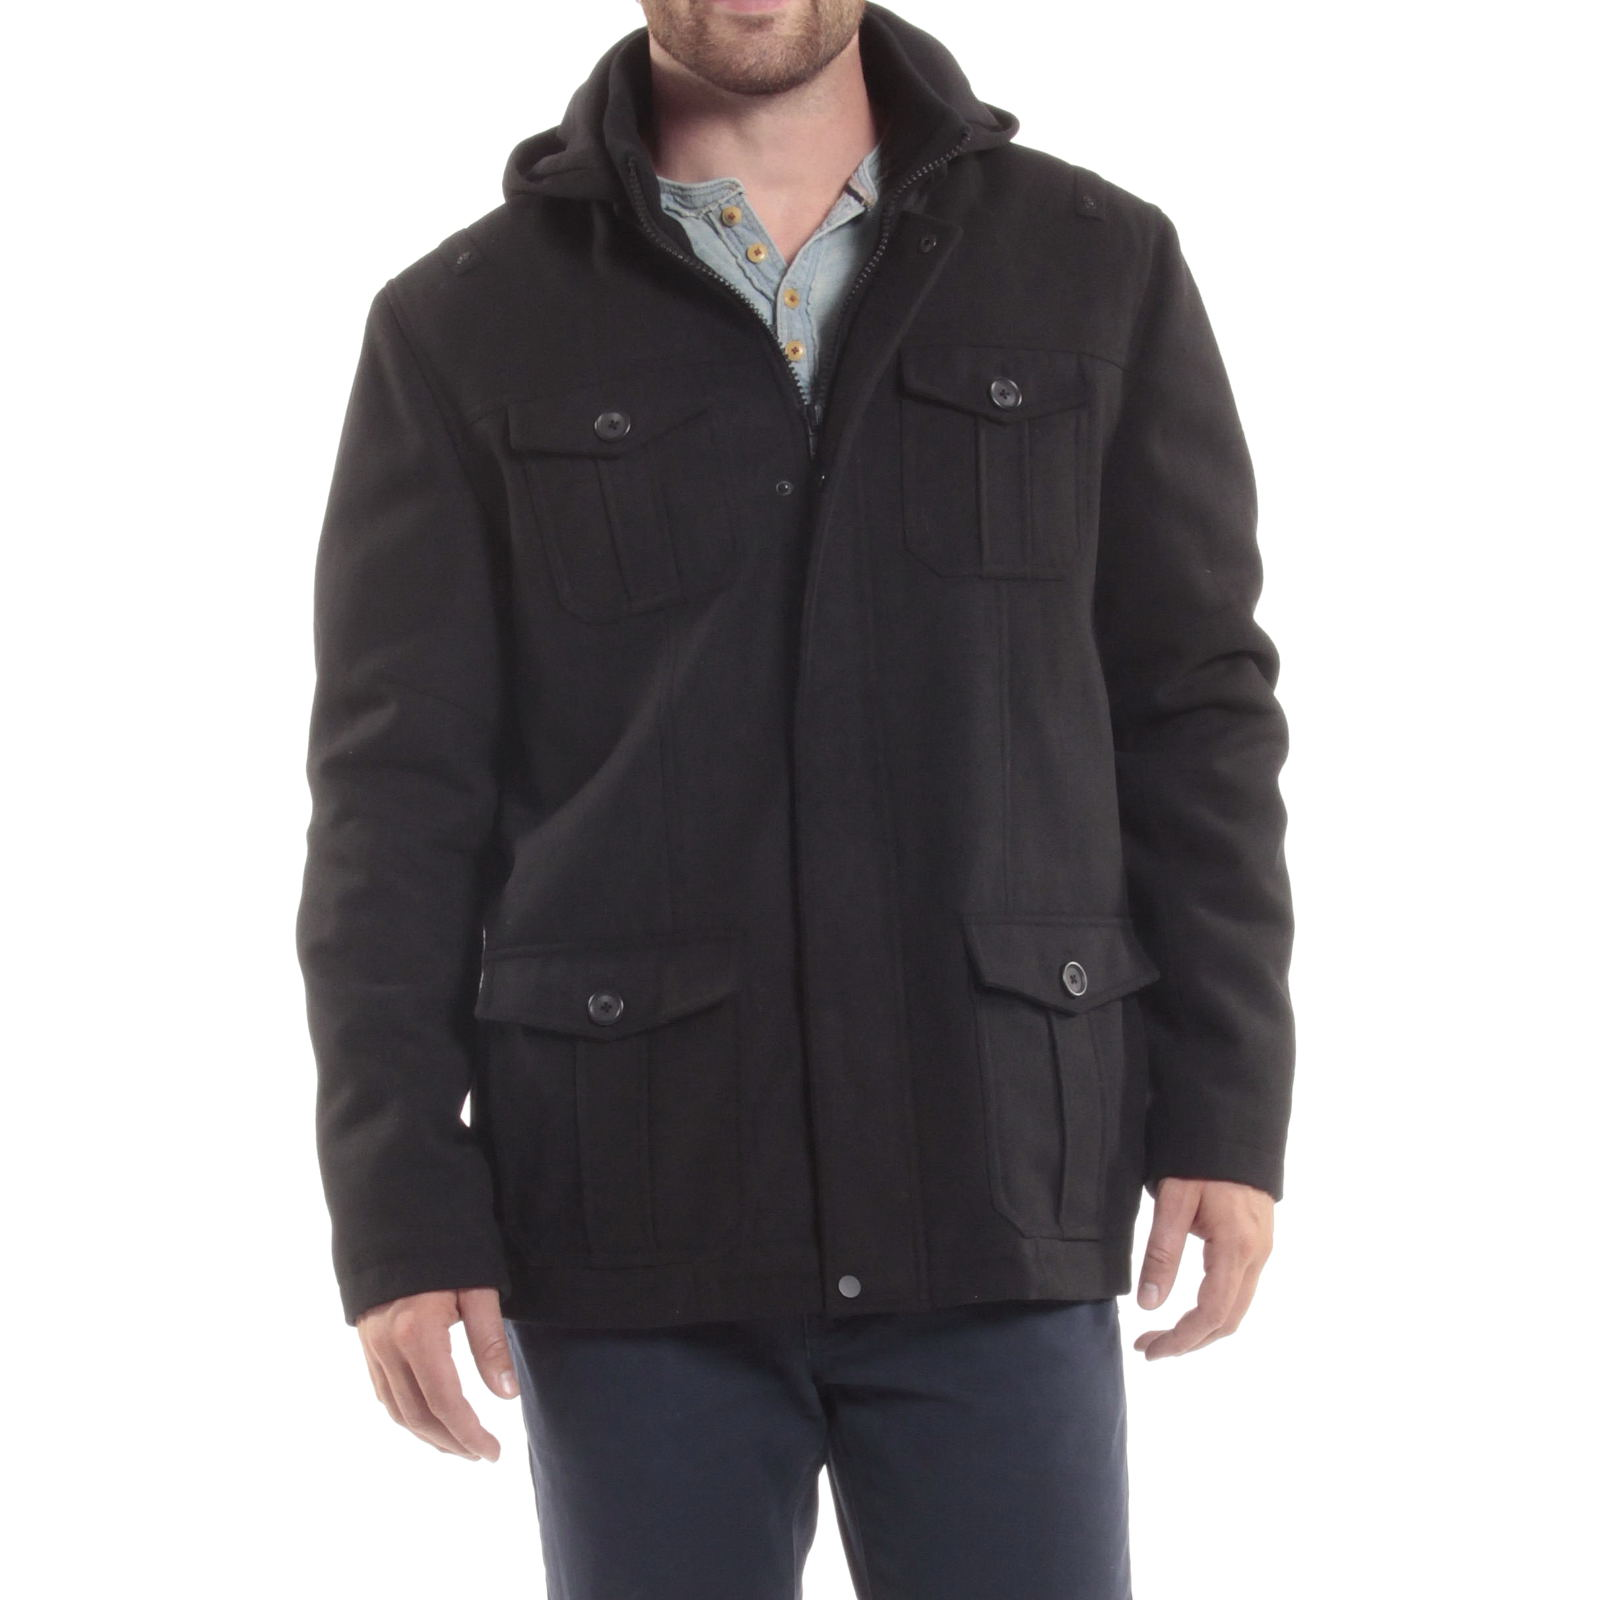 Alpine-Swiss-Noah-Mens-Wool-Coat-Parka-with-Removable-Hood-Jacket-Cargo-Pockets thumbnail 21